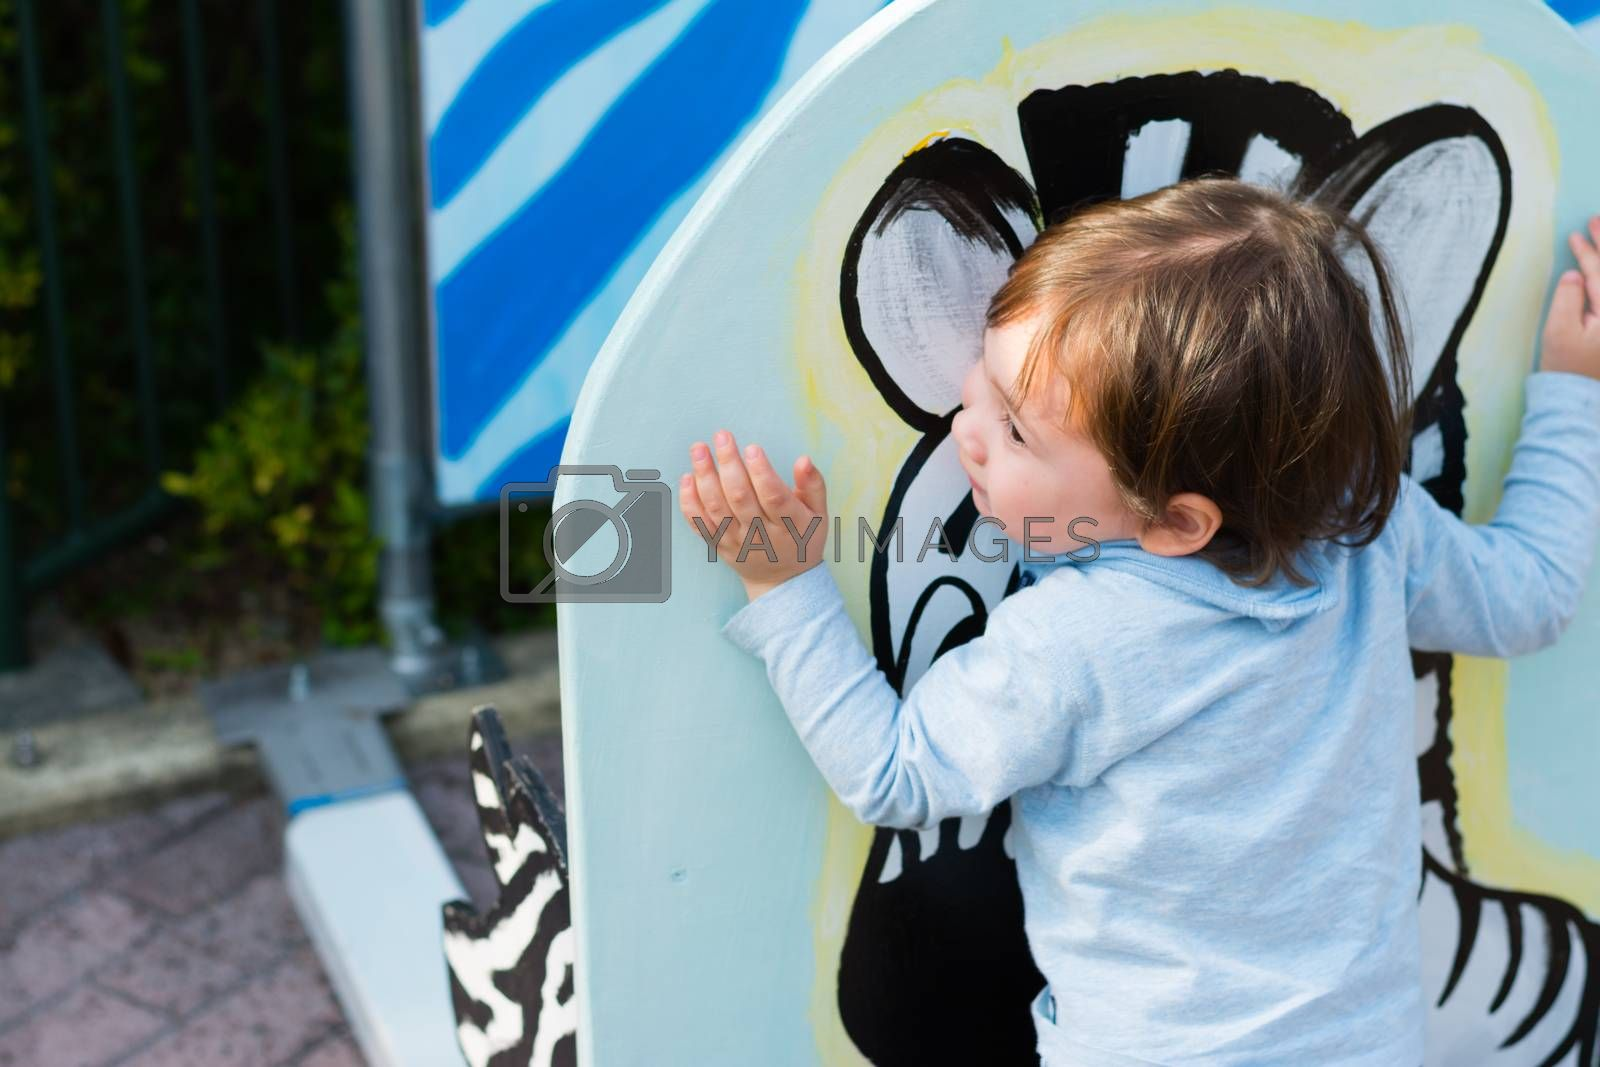 A 2 year old boy hugging a painting of a zebra at a zoo.